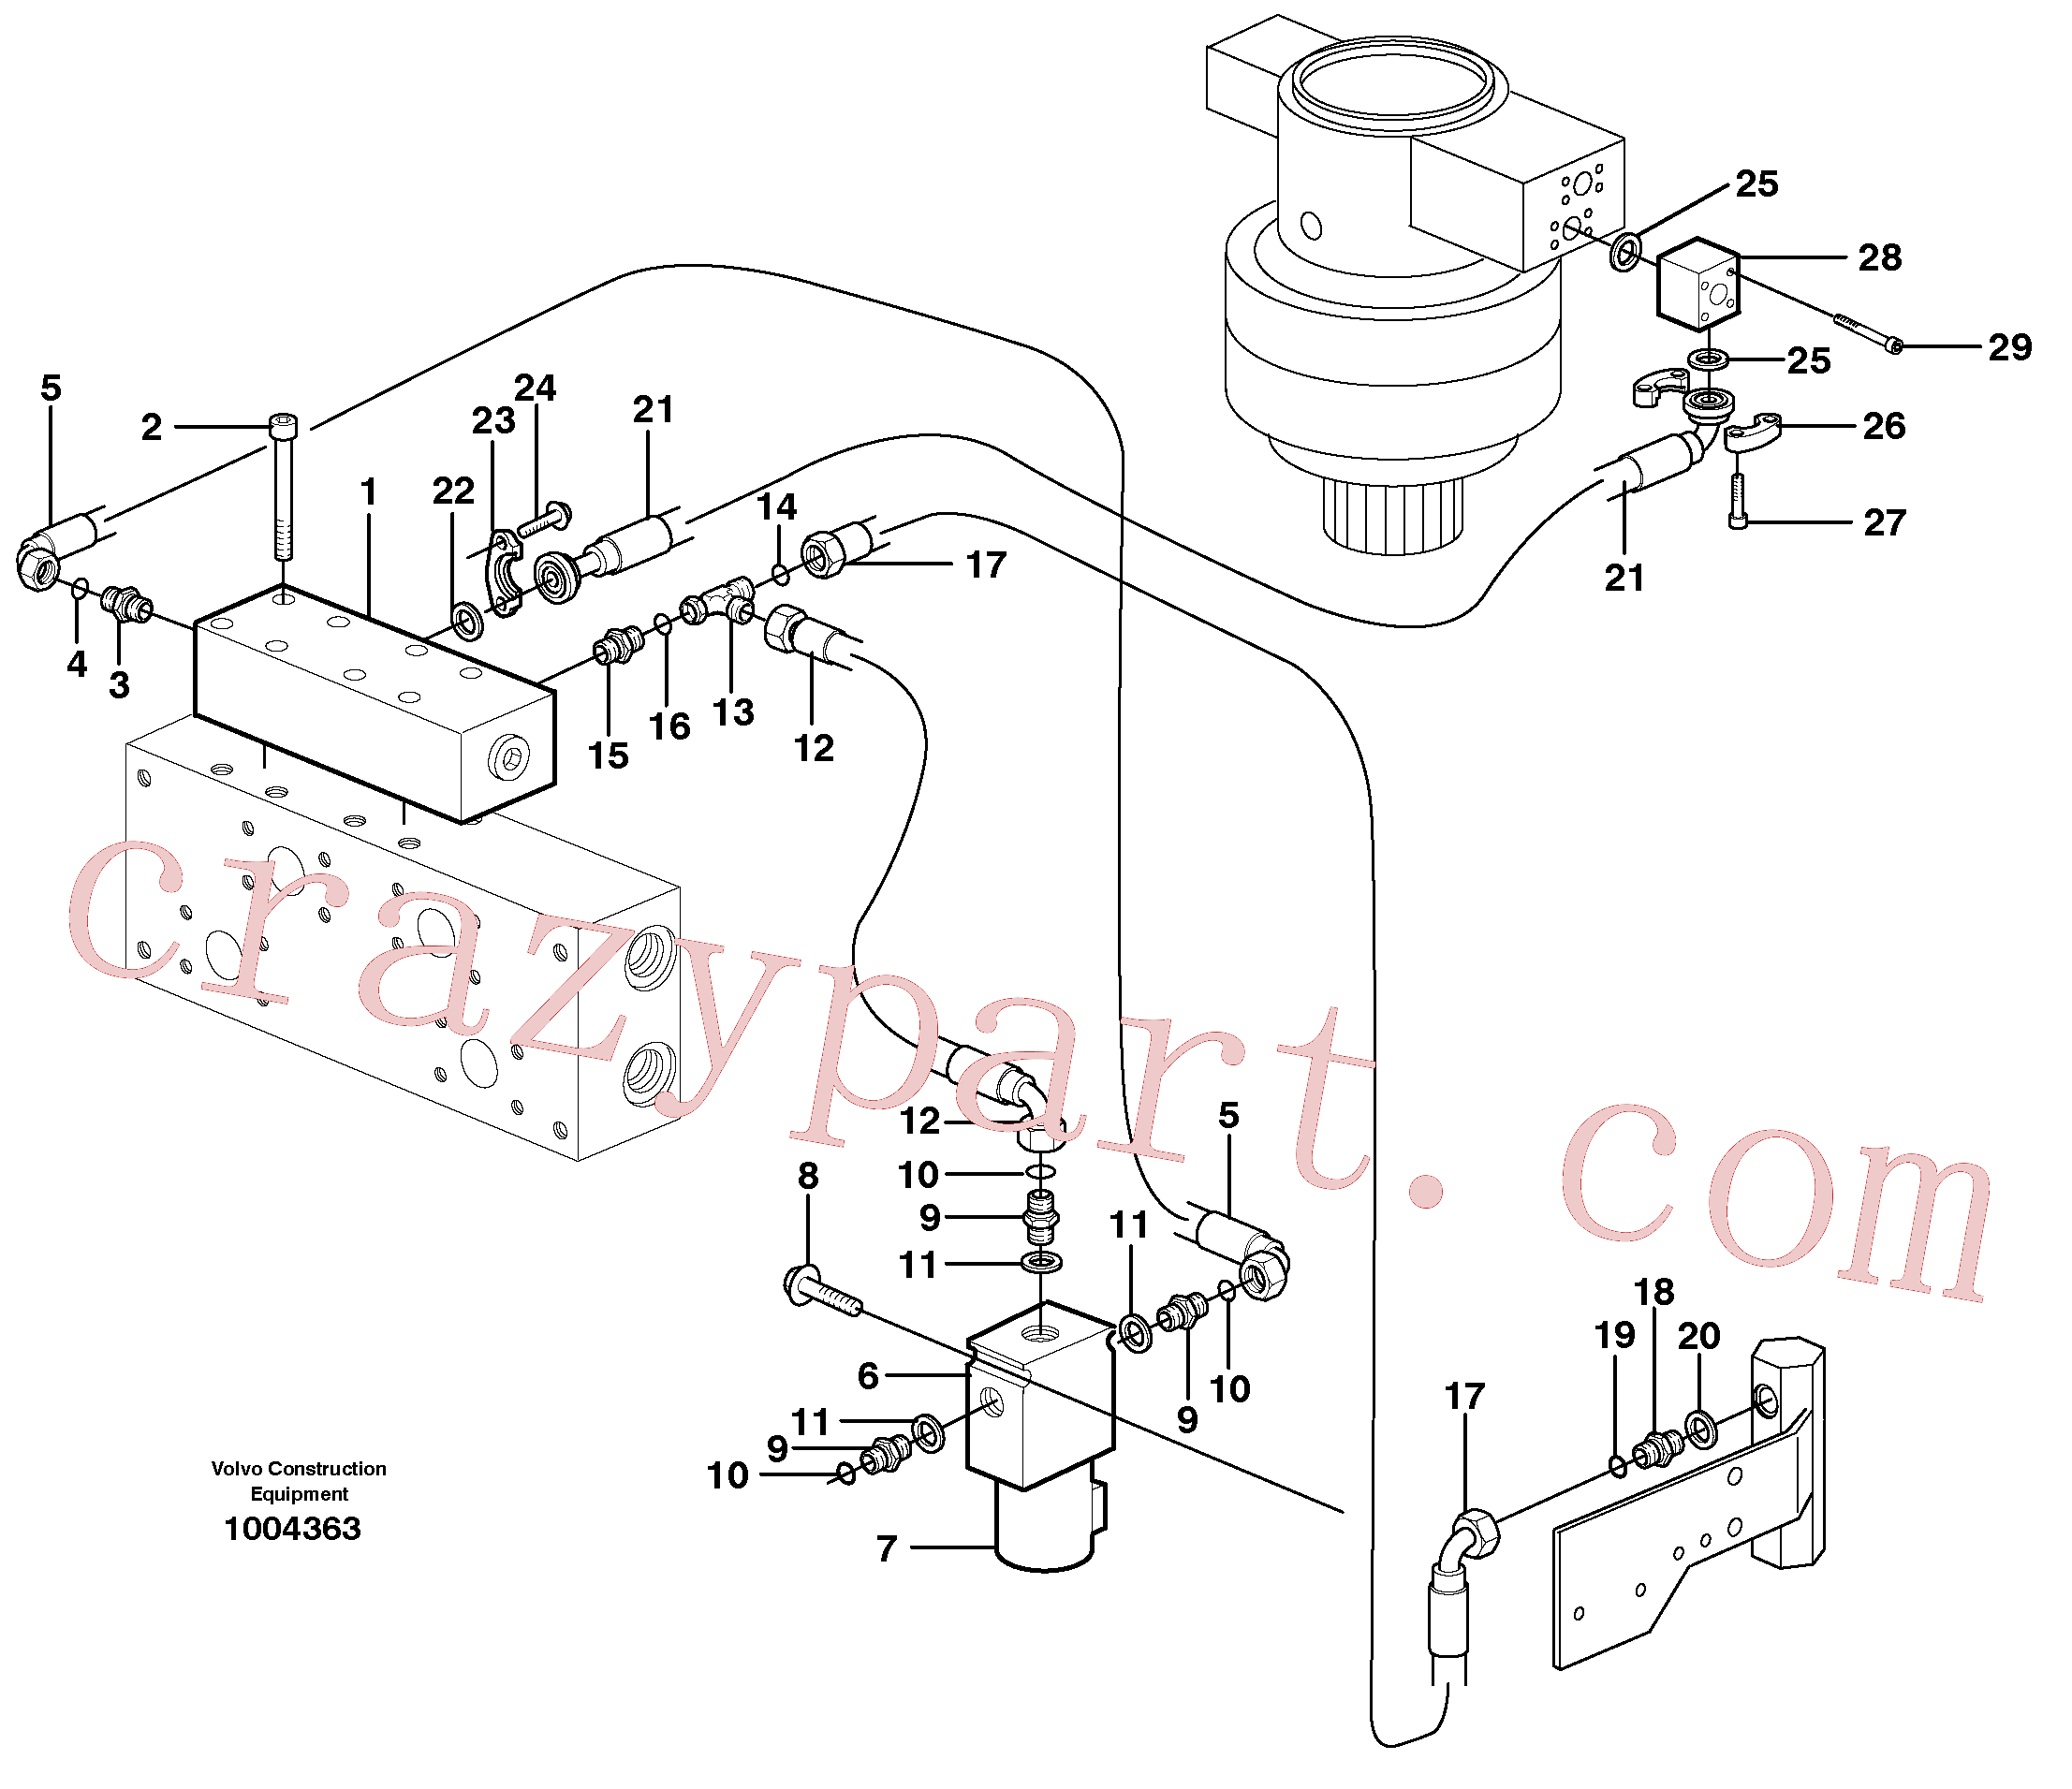 VOE14373061 for Volvo Hydraulic system, Float position valve(1004363 assembly)